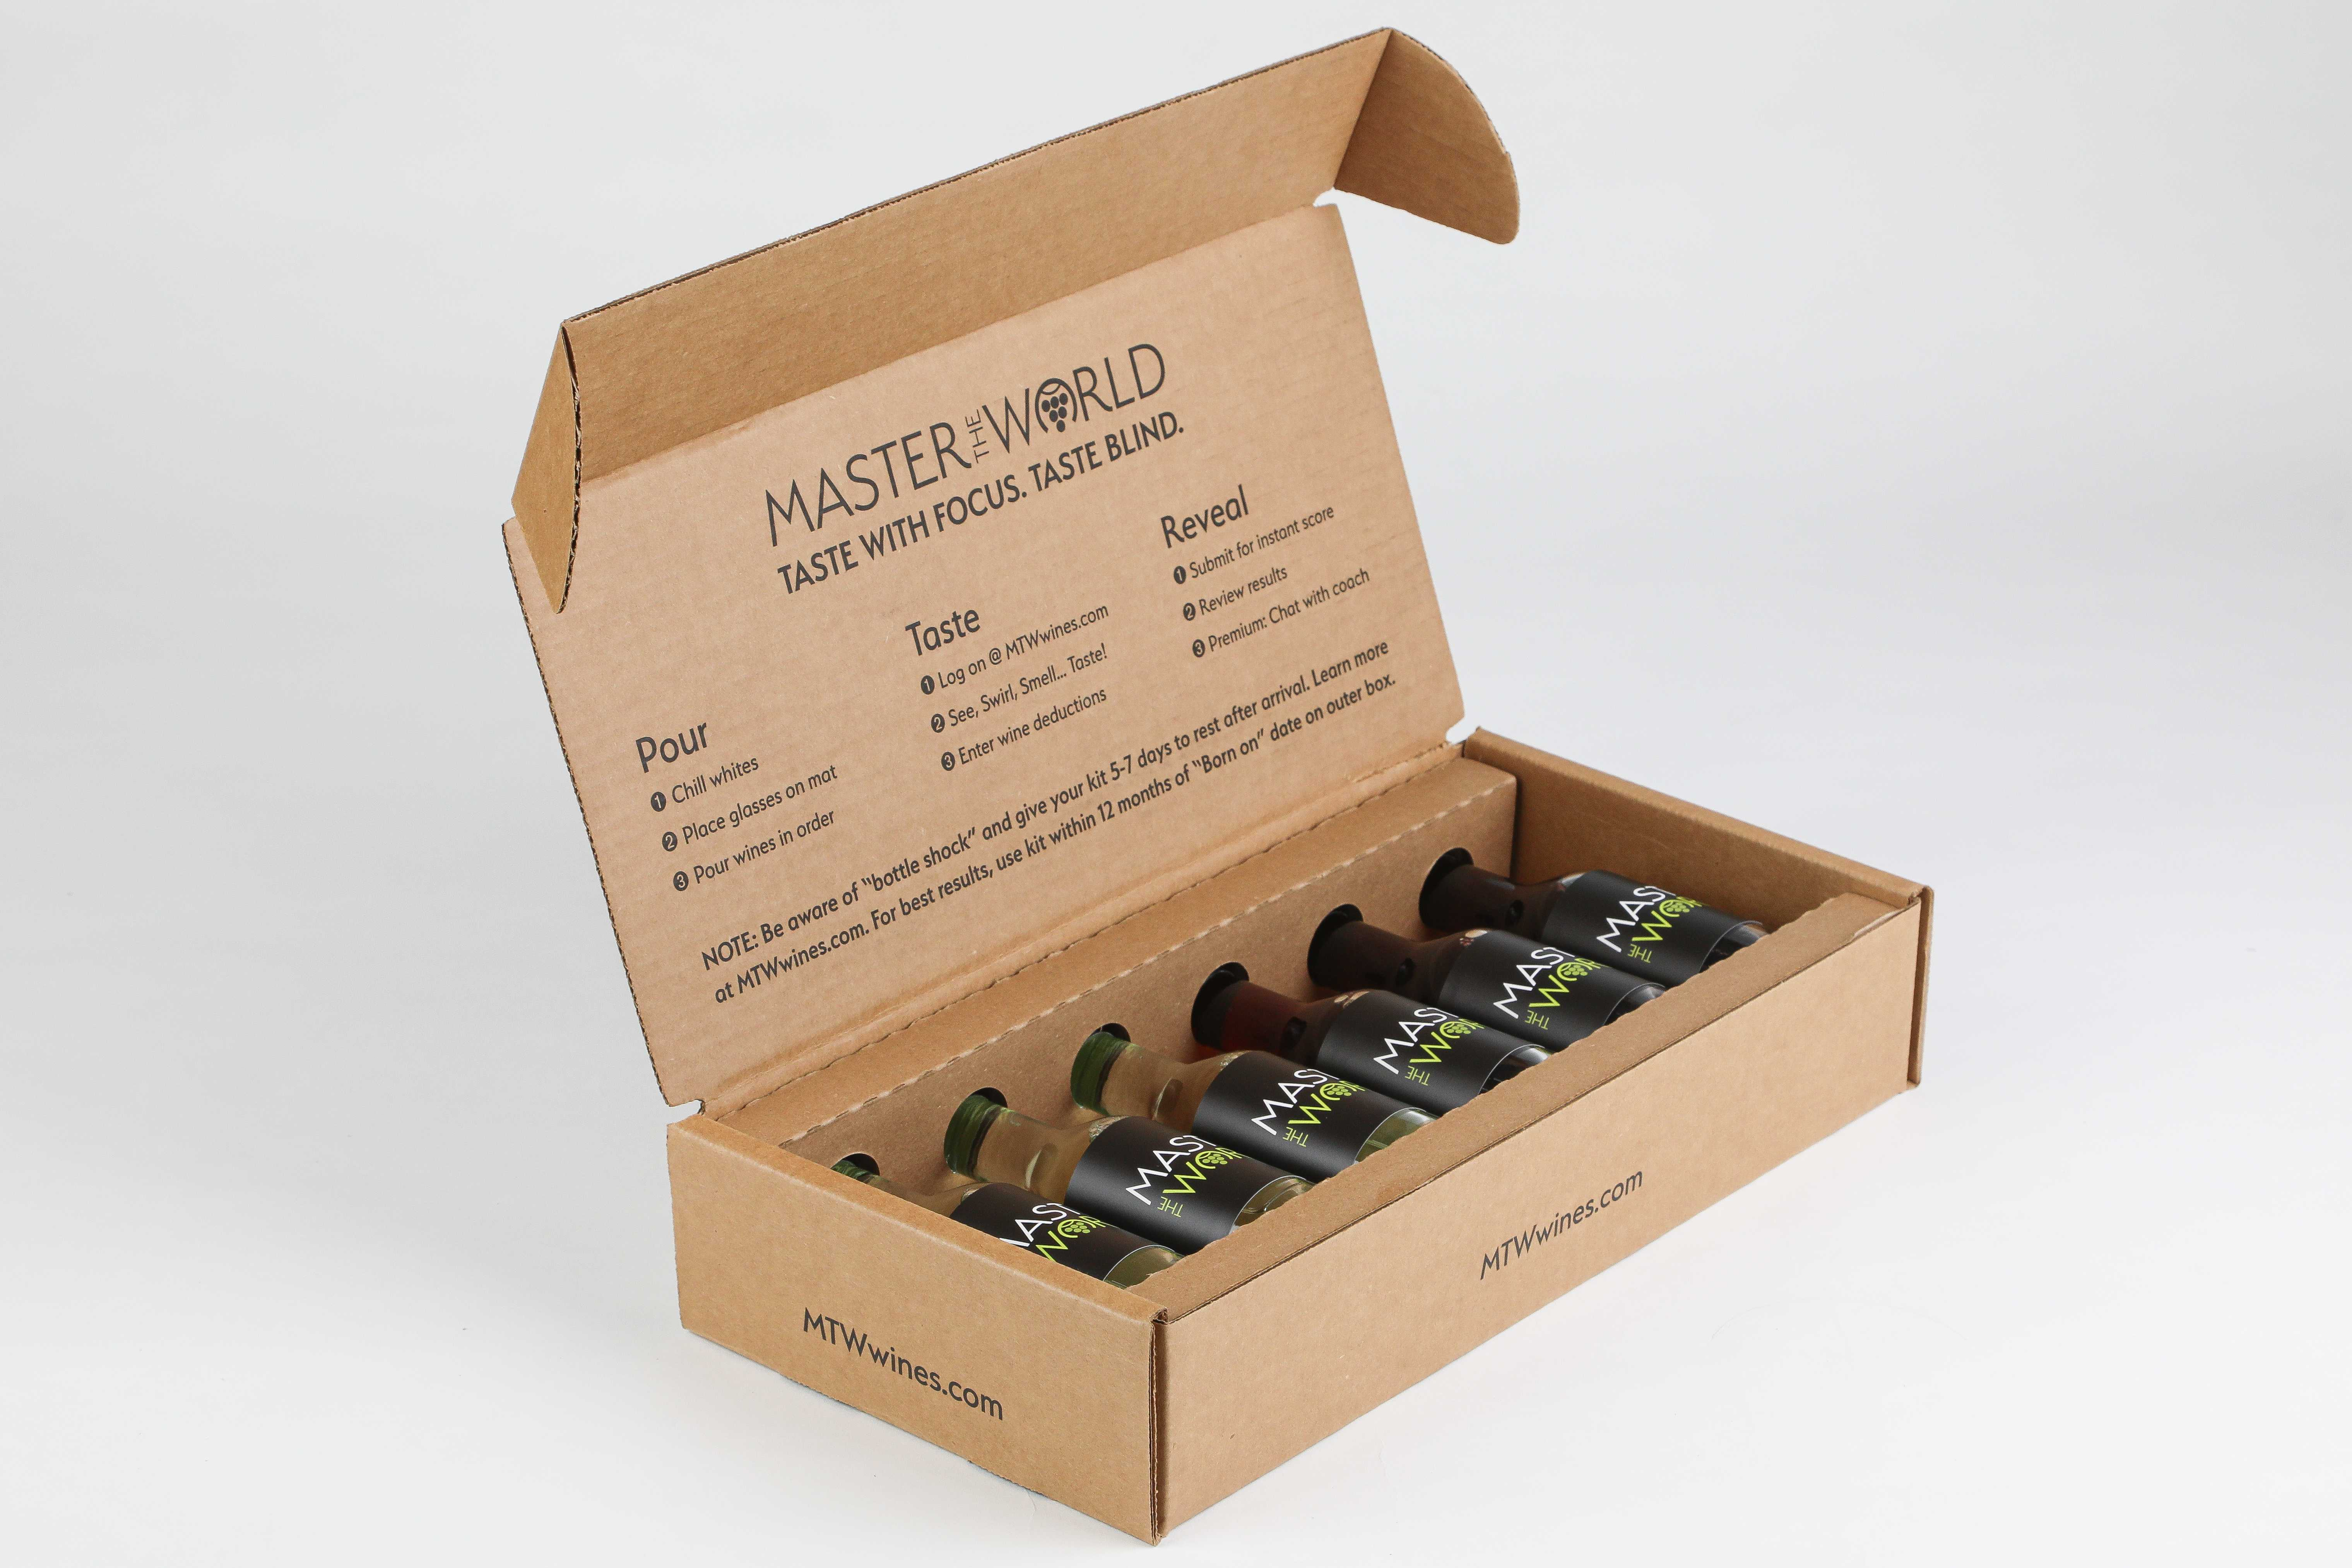 Master the World package